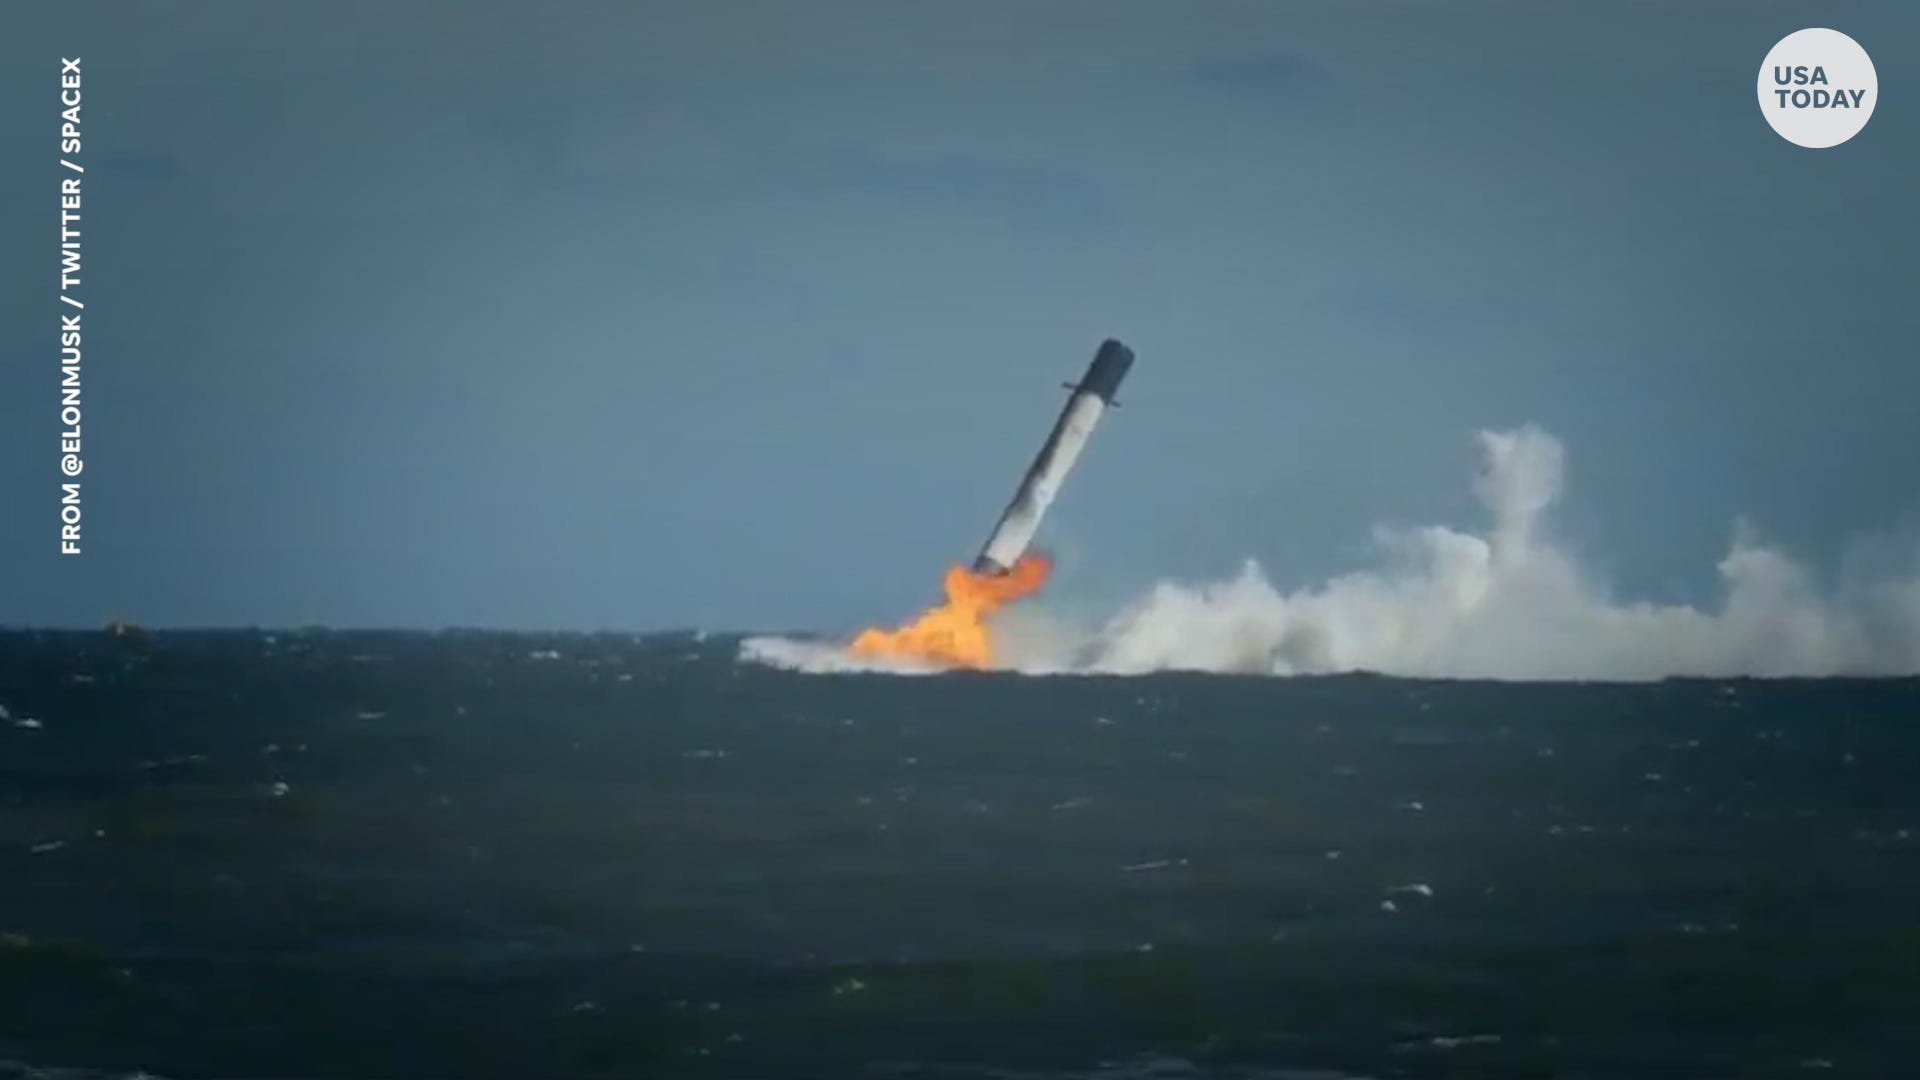 Spacex Launch 4 Records Broken With Falcon 9 Launch From